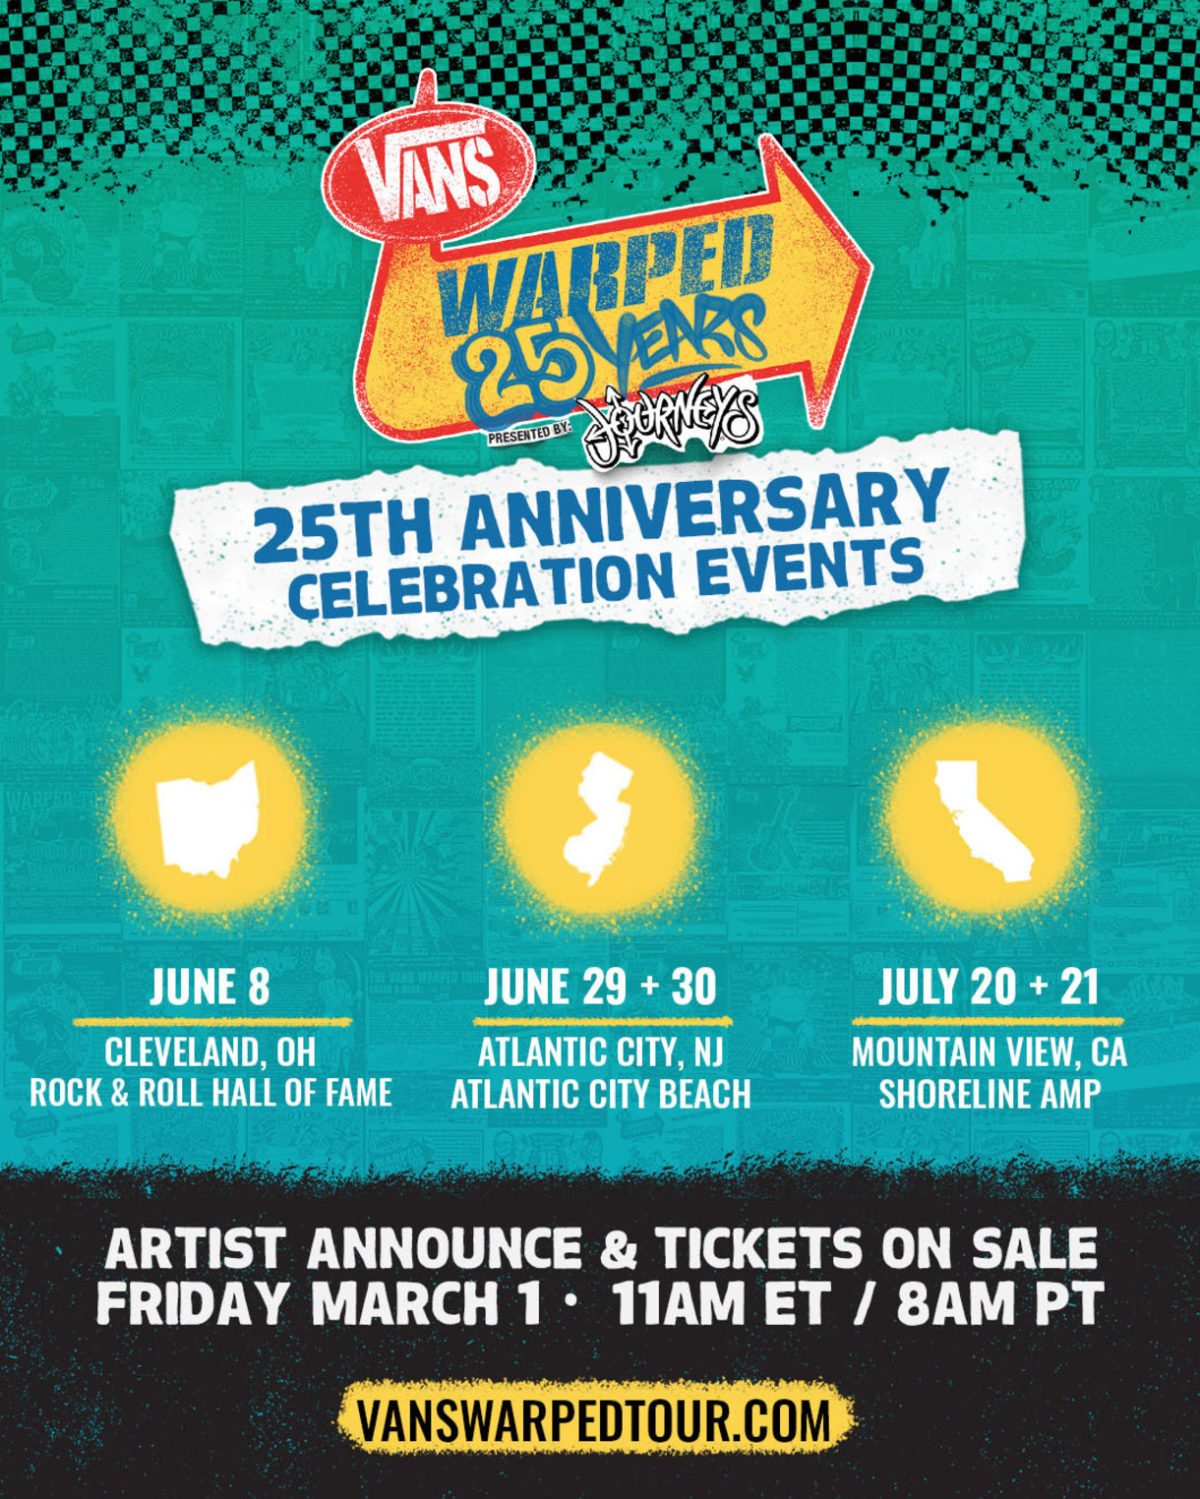 Artists Announced for Warped Tour  25th Anniversary Events